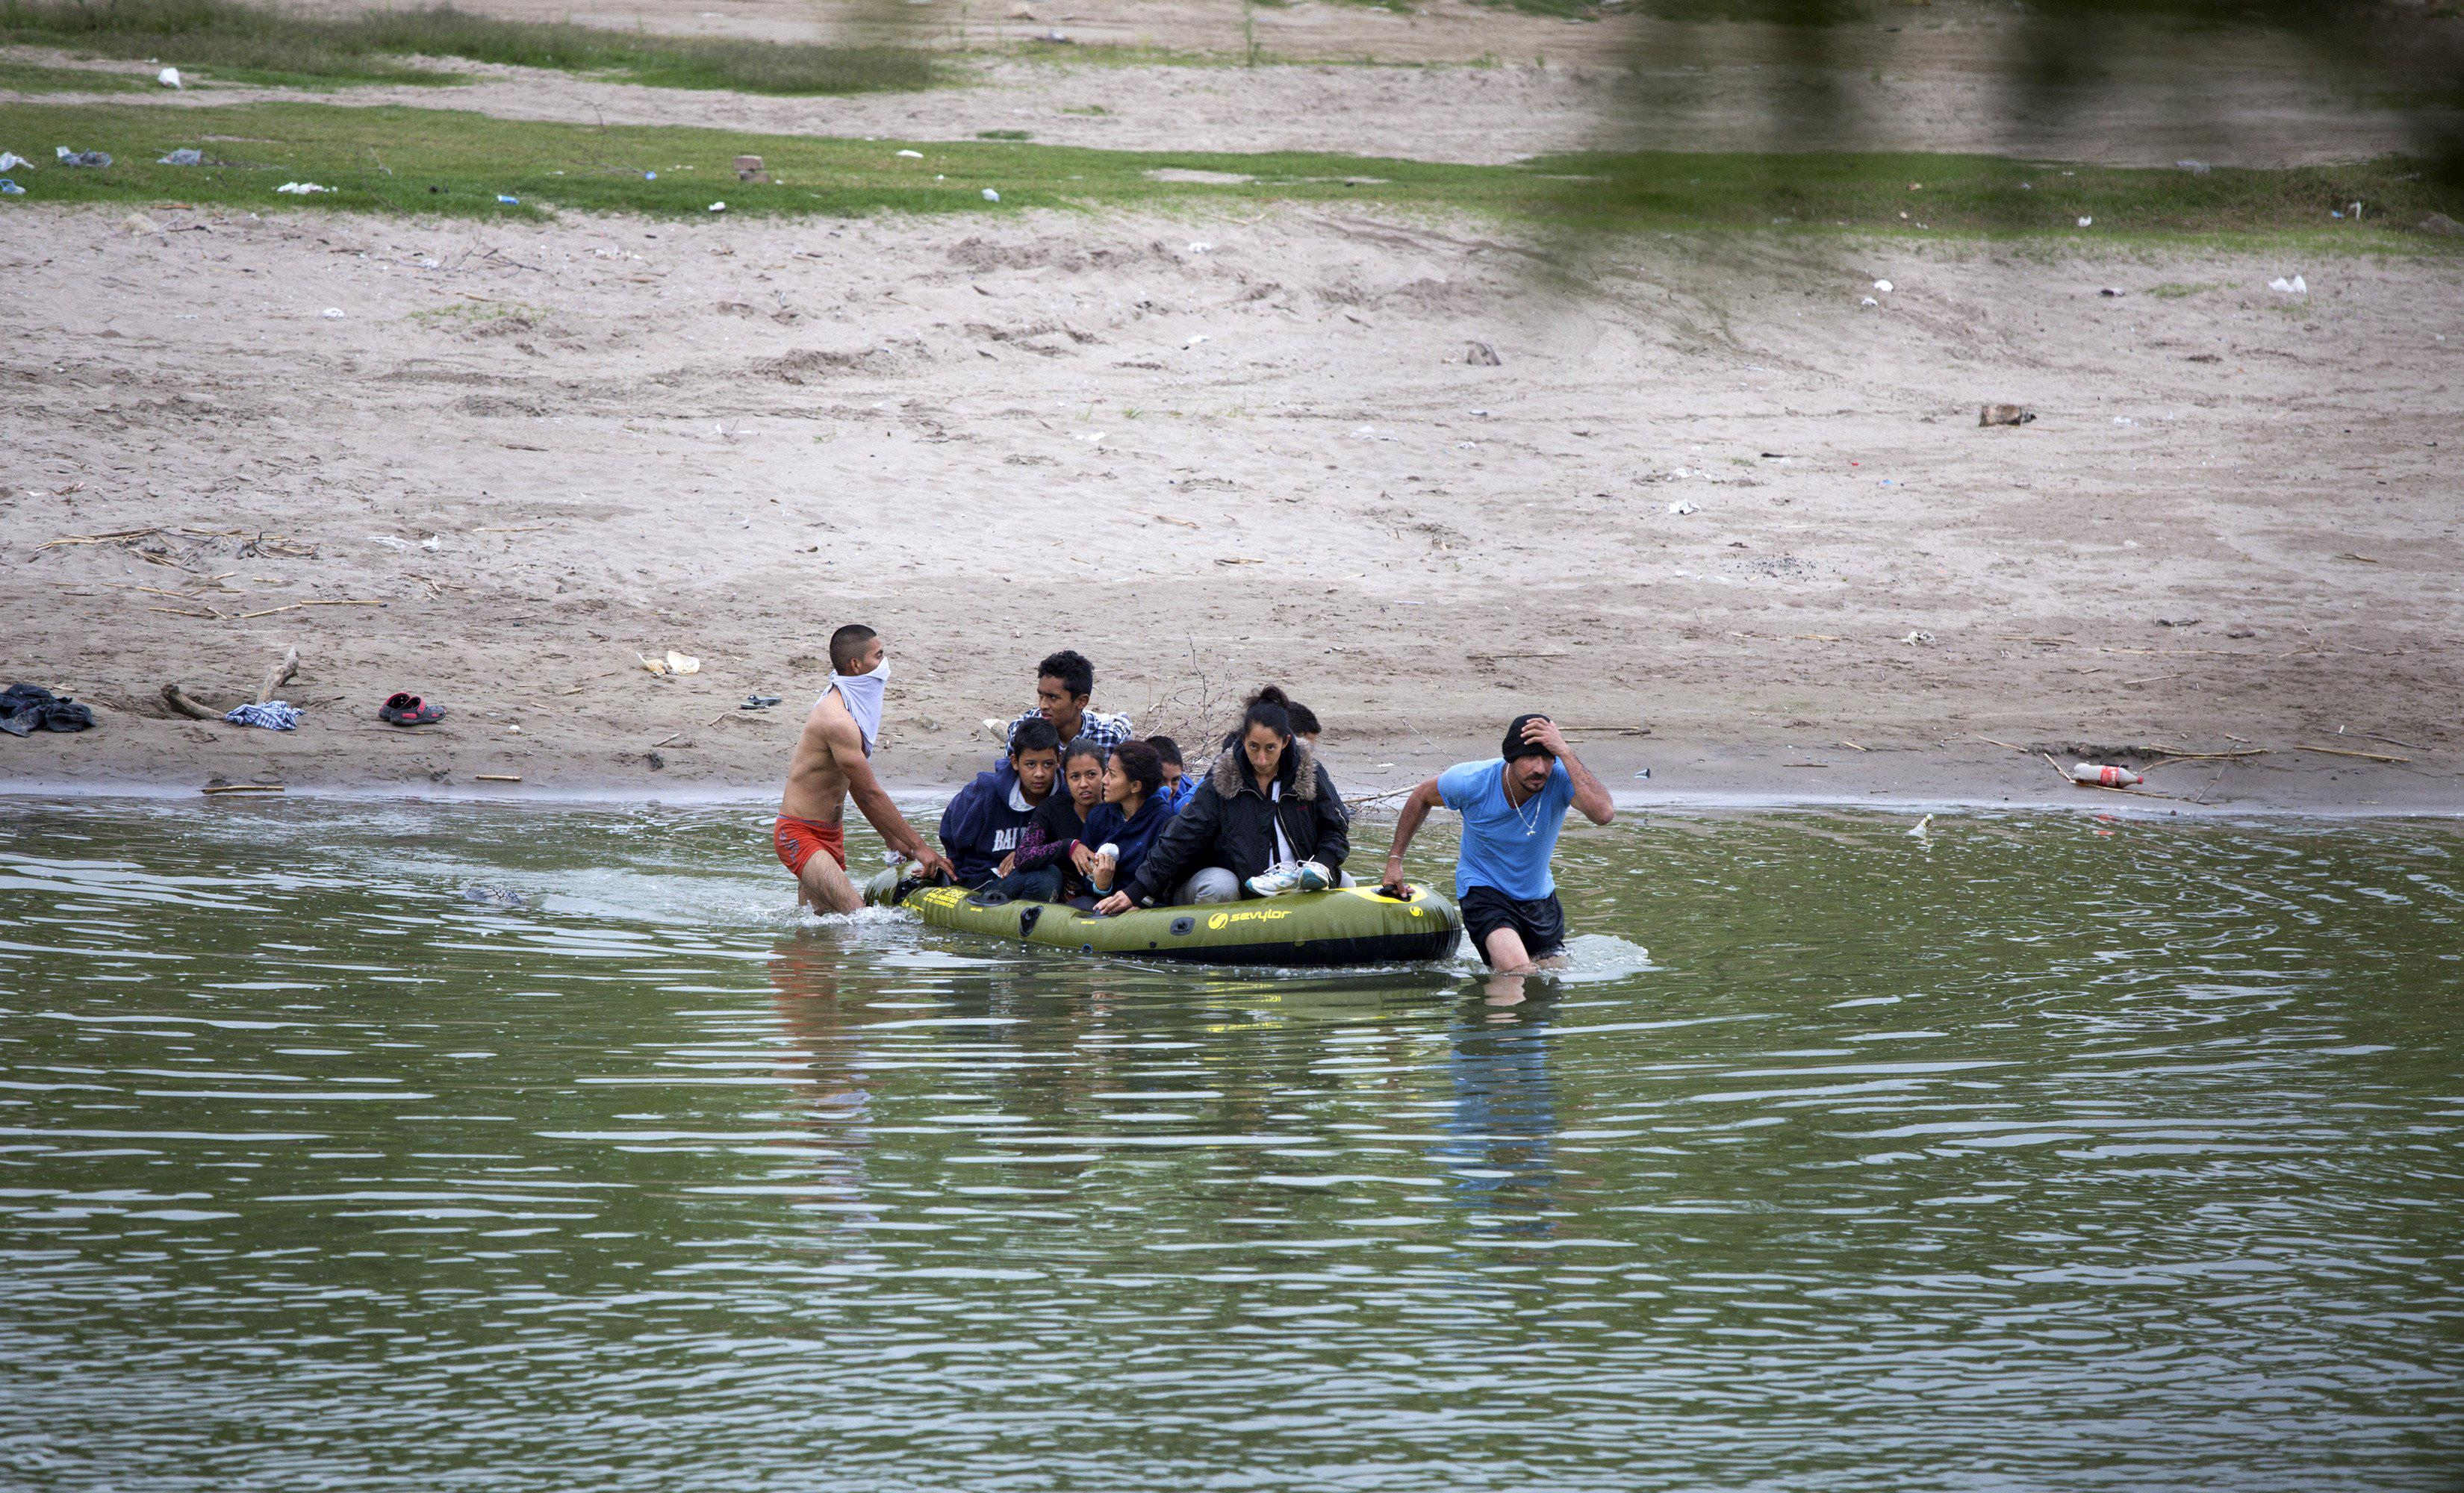 Image: Two guides lead a raft full of migrants across the Rio Grande